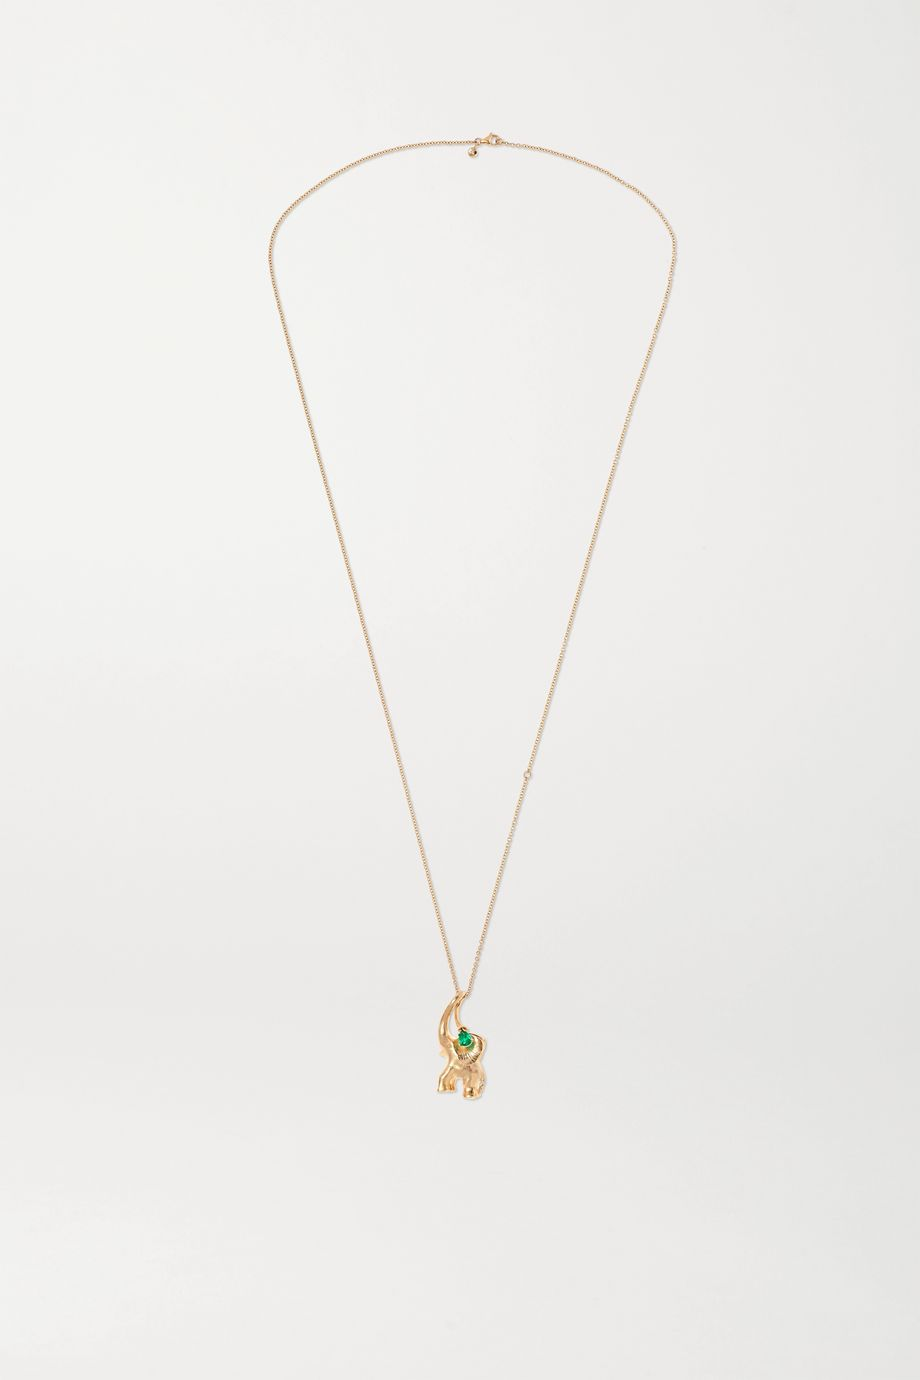 OLE LYNGGAARD COPENHAGEN + Space For Giants 18-karat gold emerald necklace